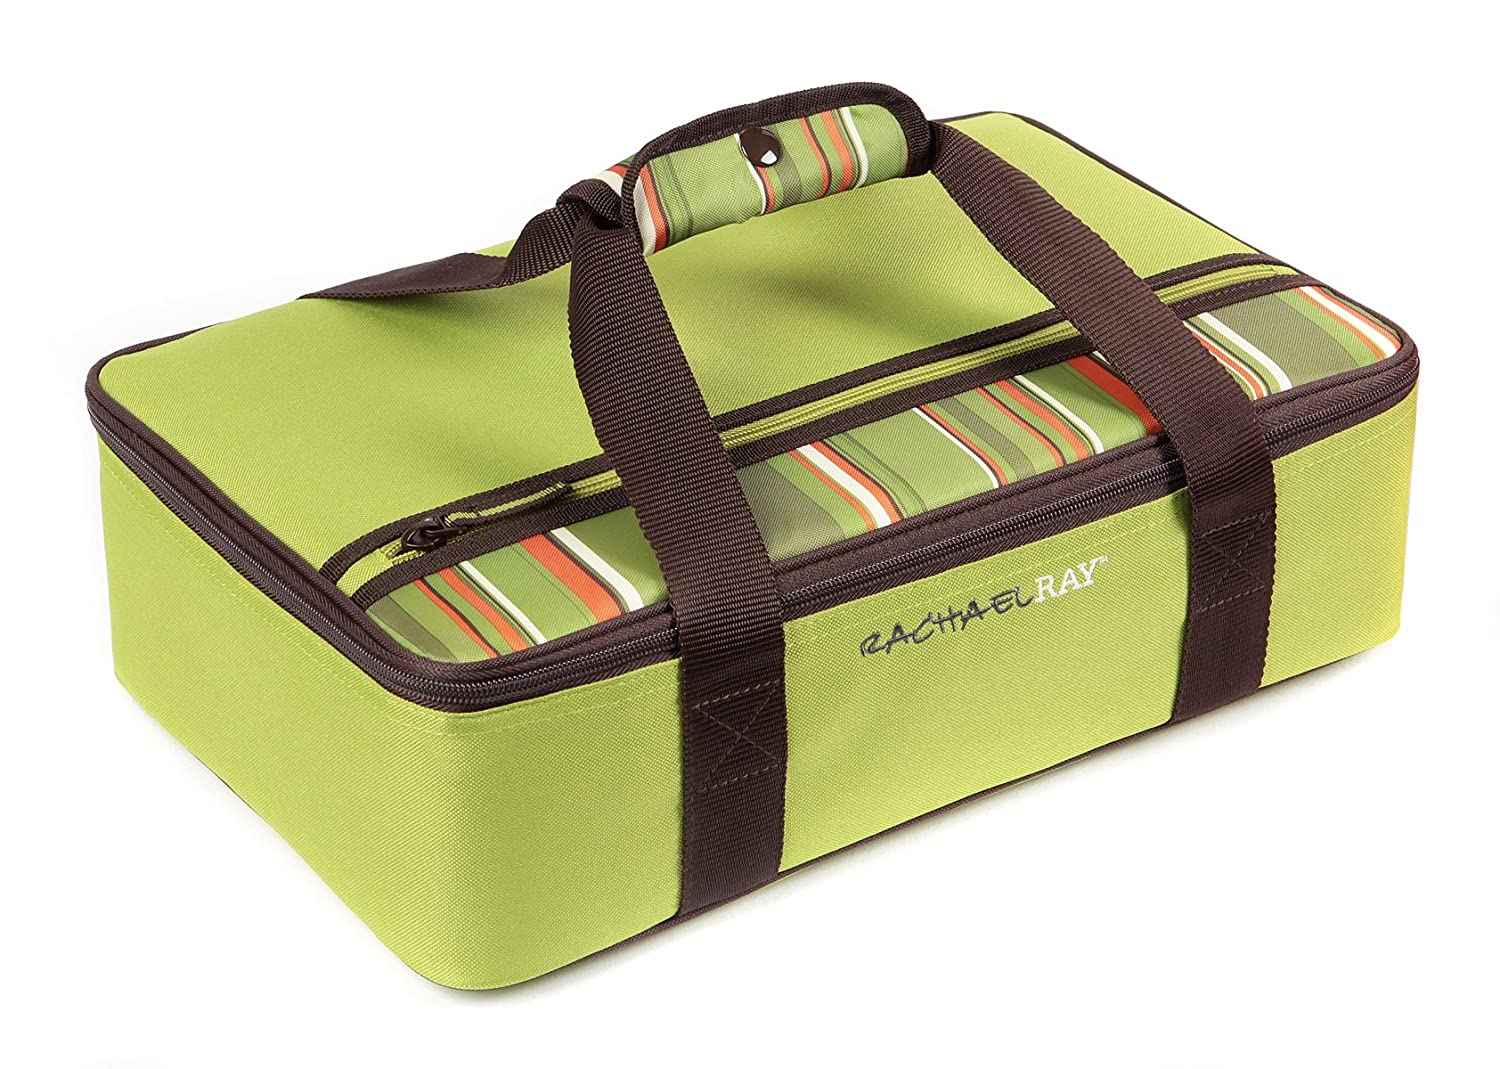 "Rachael Ray Lasagna Lugger, Insulated Casserole Carrier for Potluck Parties, Picnics, Tailgates - Fits 9""x13"" Baking Dish, Green"